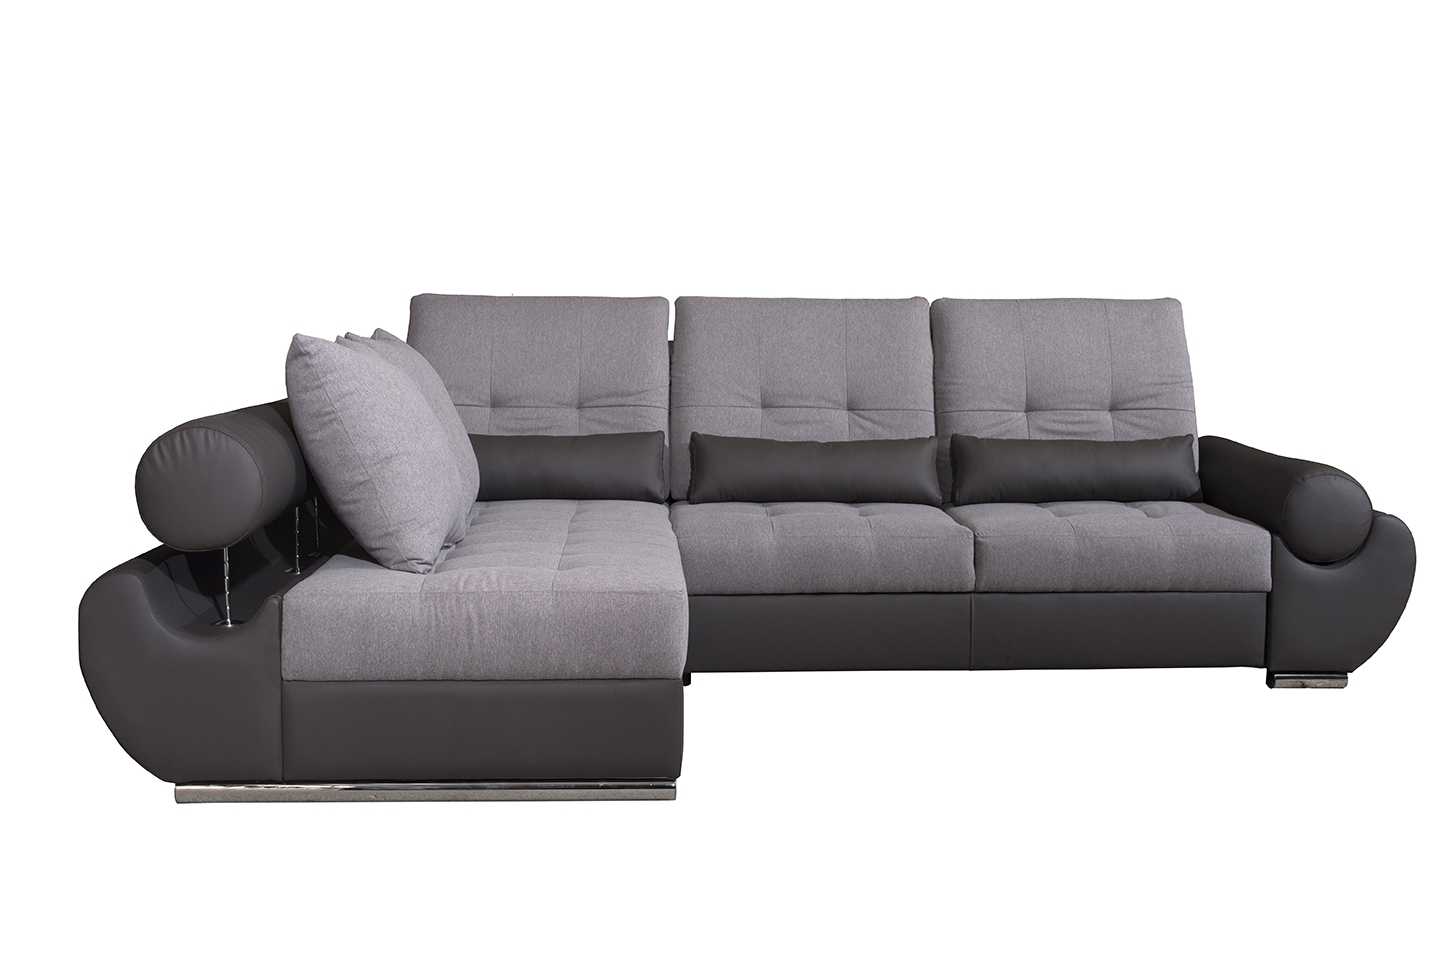 Widely Used Talia Sectional Sofa Talia Esf Furniture Sectional Sofas At In Queens Ny Sectional Sofas (View 20 of 20)